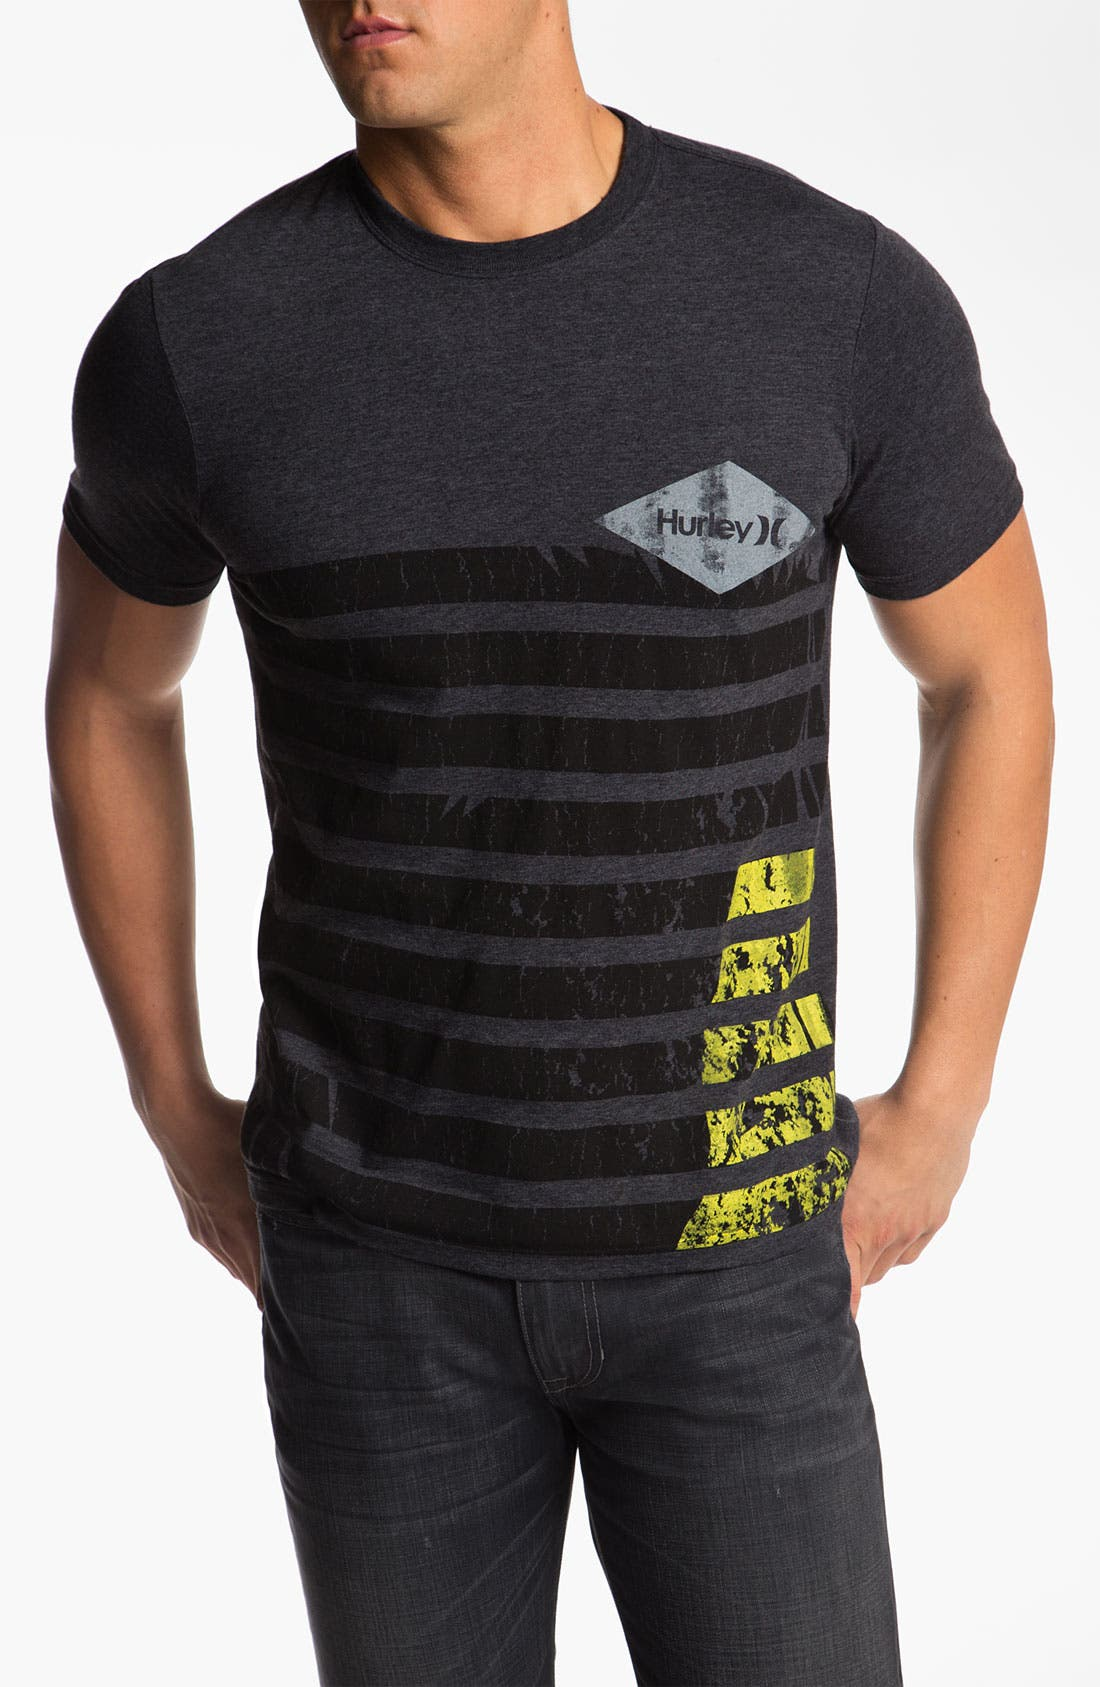 Main Image - Hurley 'Diamond in the Rough' Graphic T-Shirt